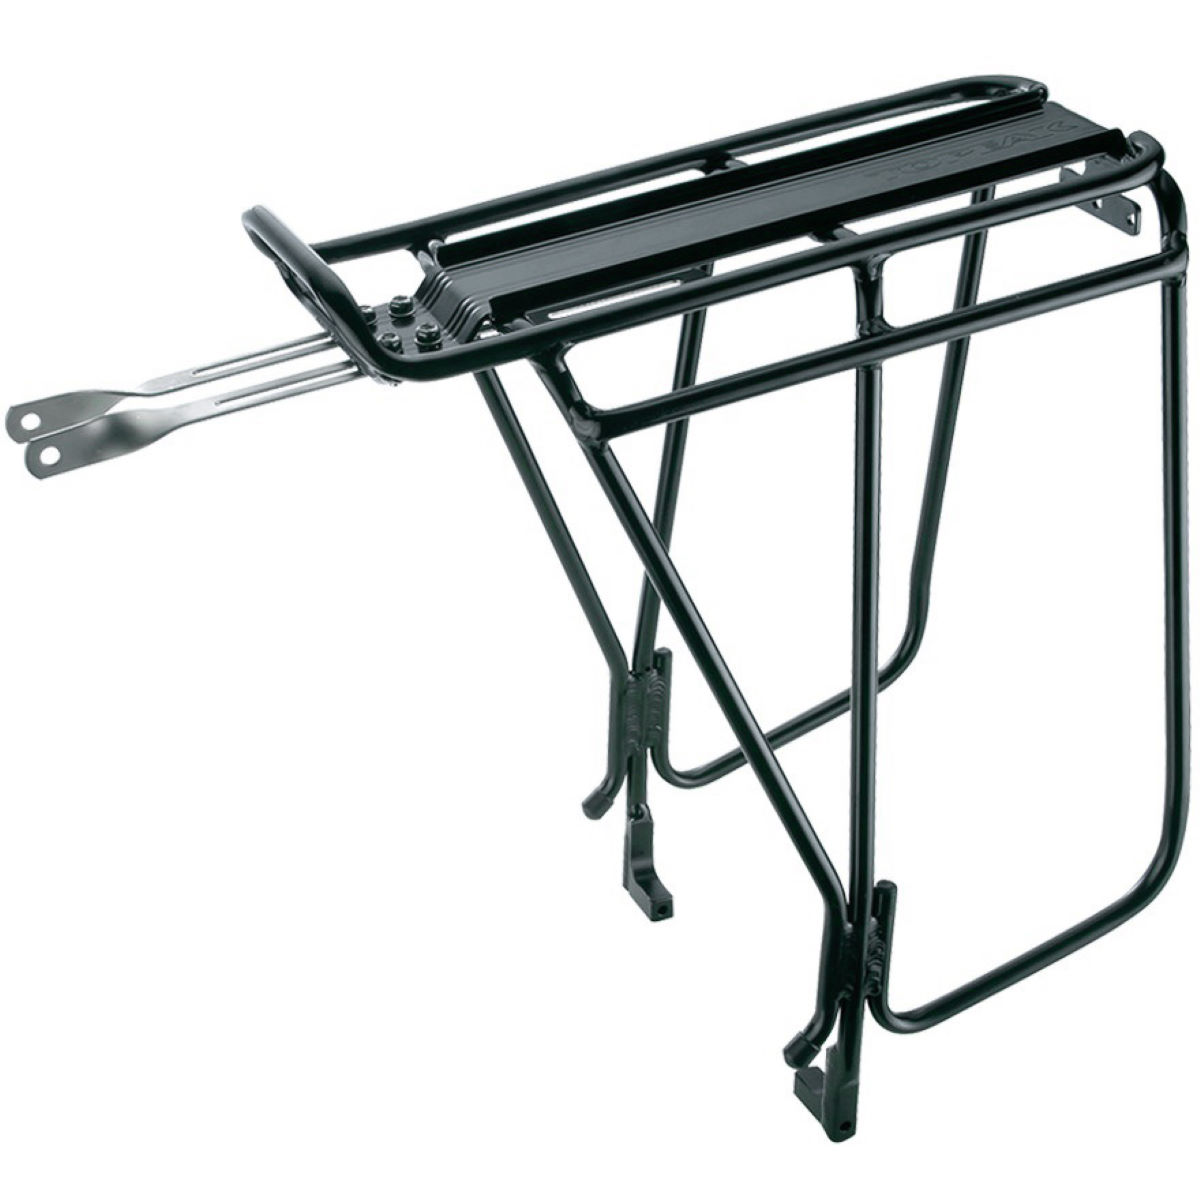 Topeak Topeak Super Tourist DX F/Disc Rear Rack   Pannier Racks